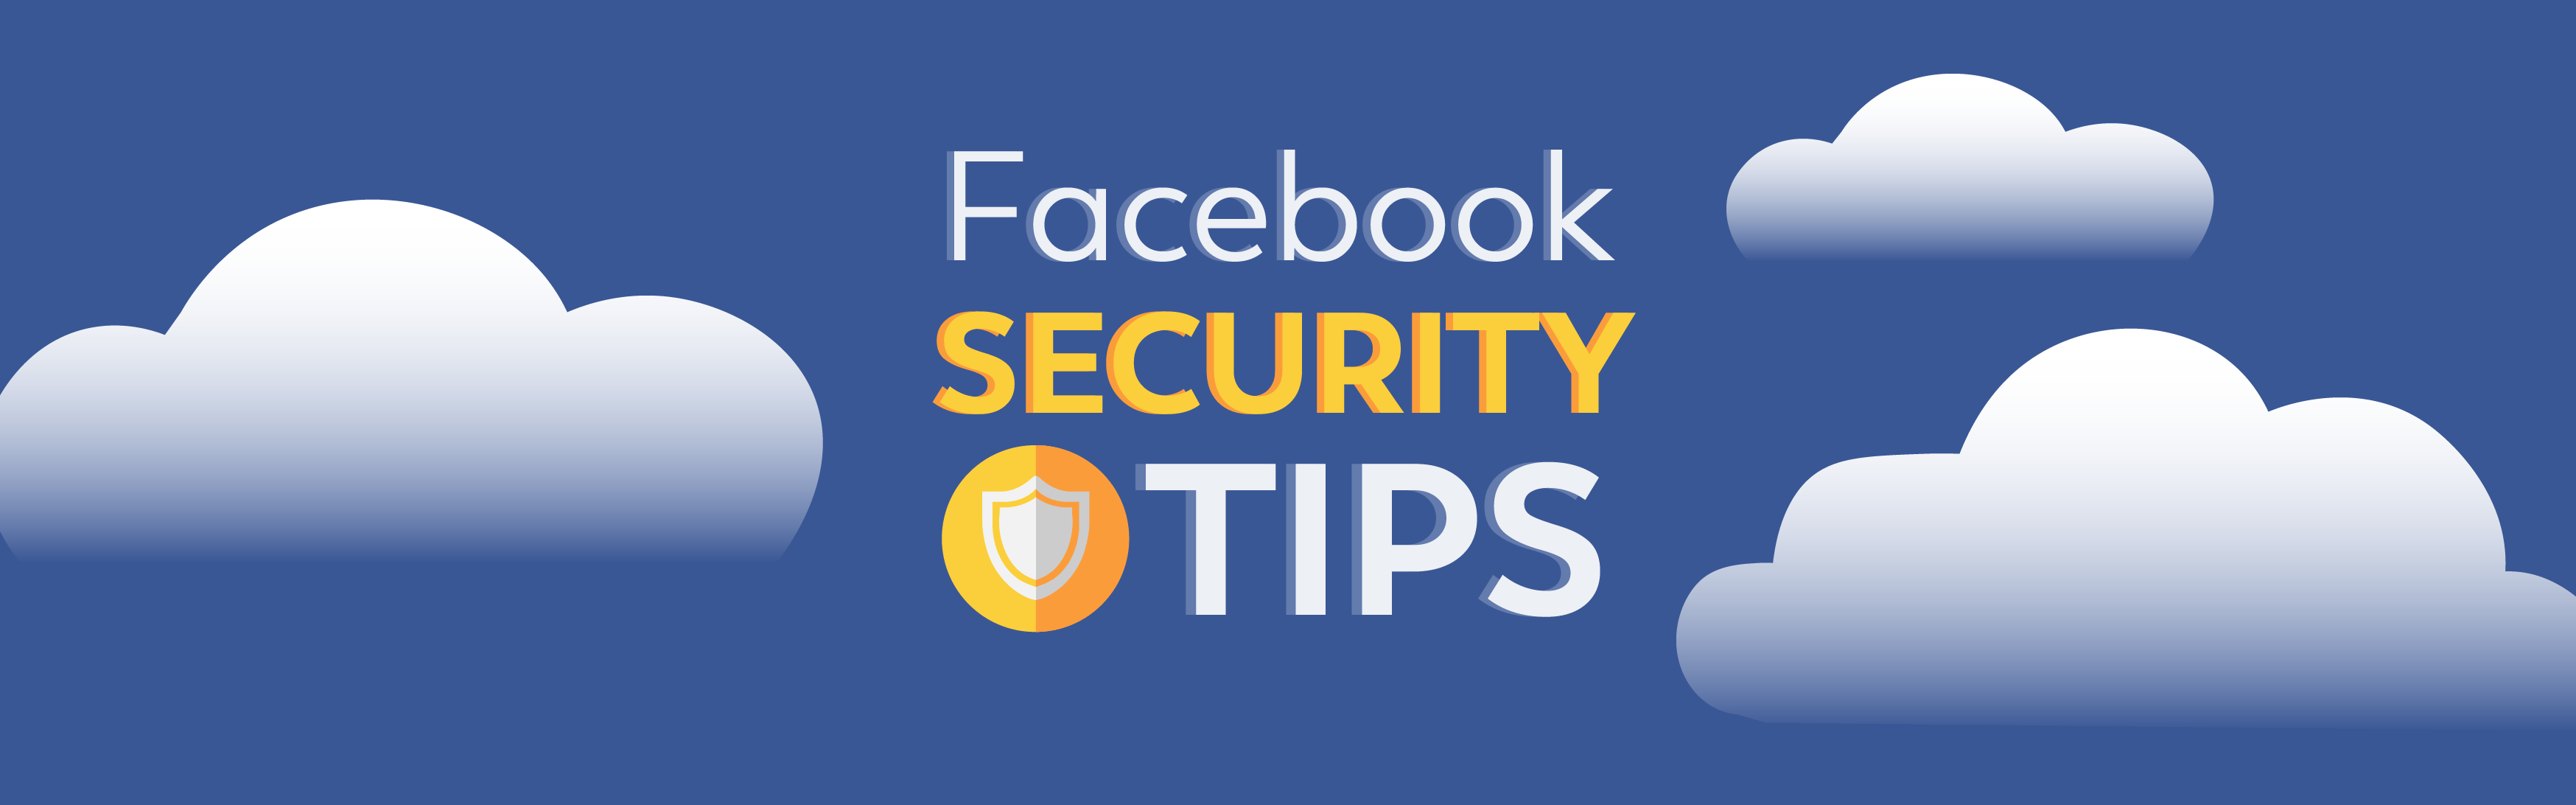 Facebook Page Security Tips: 6 Ways To Stay Protected.